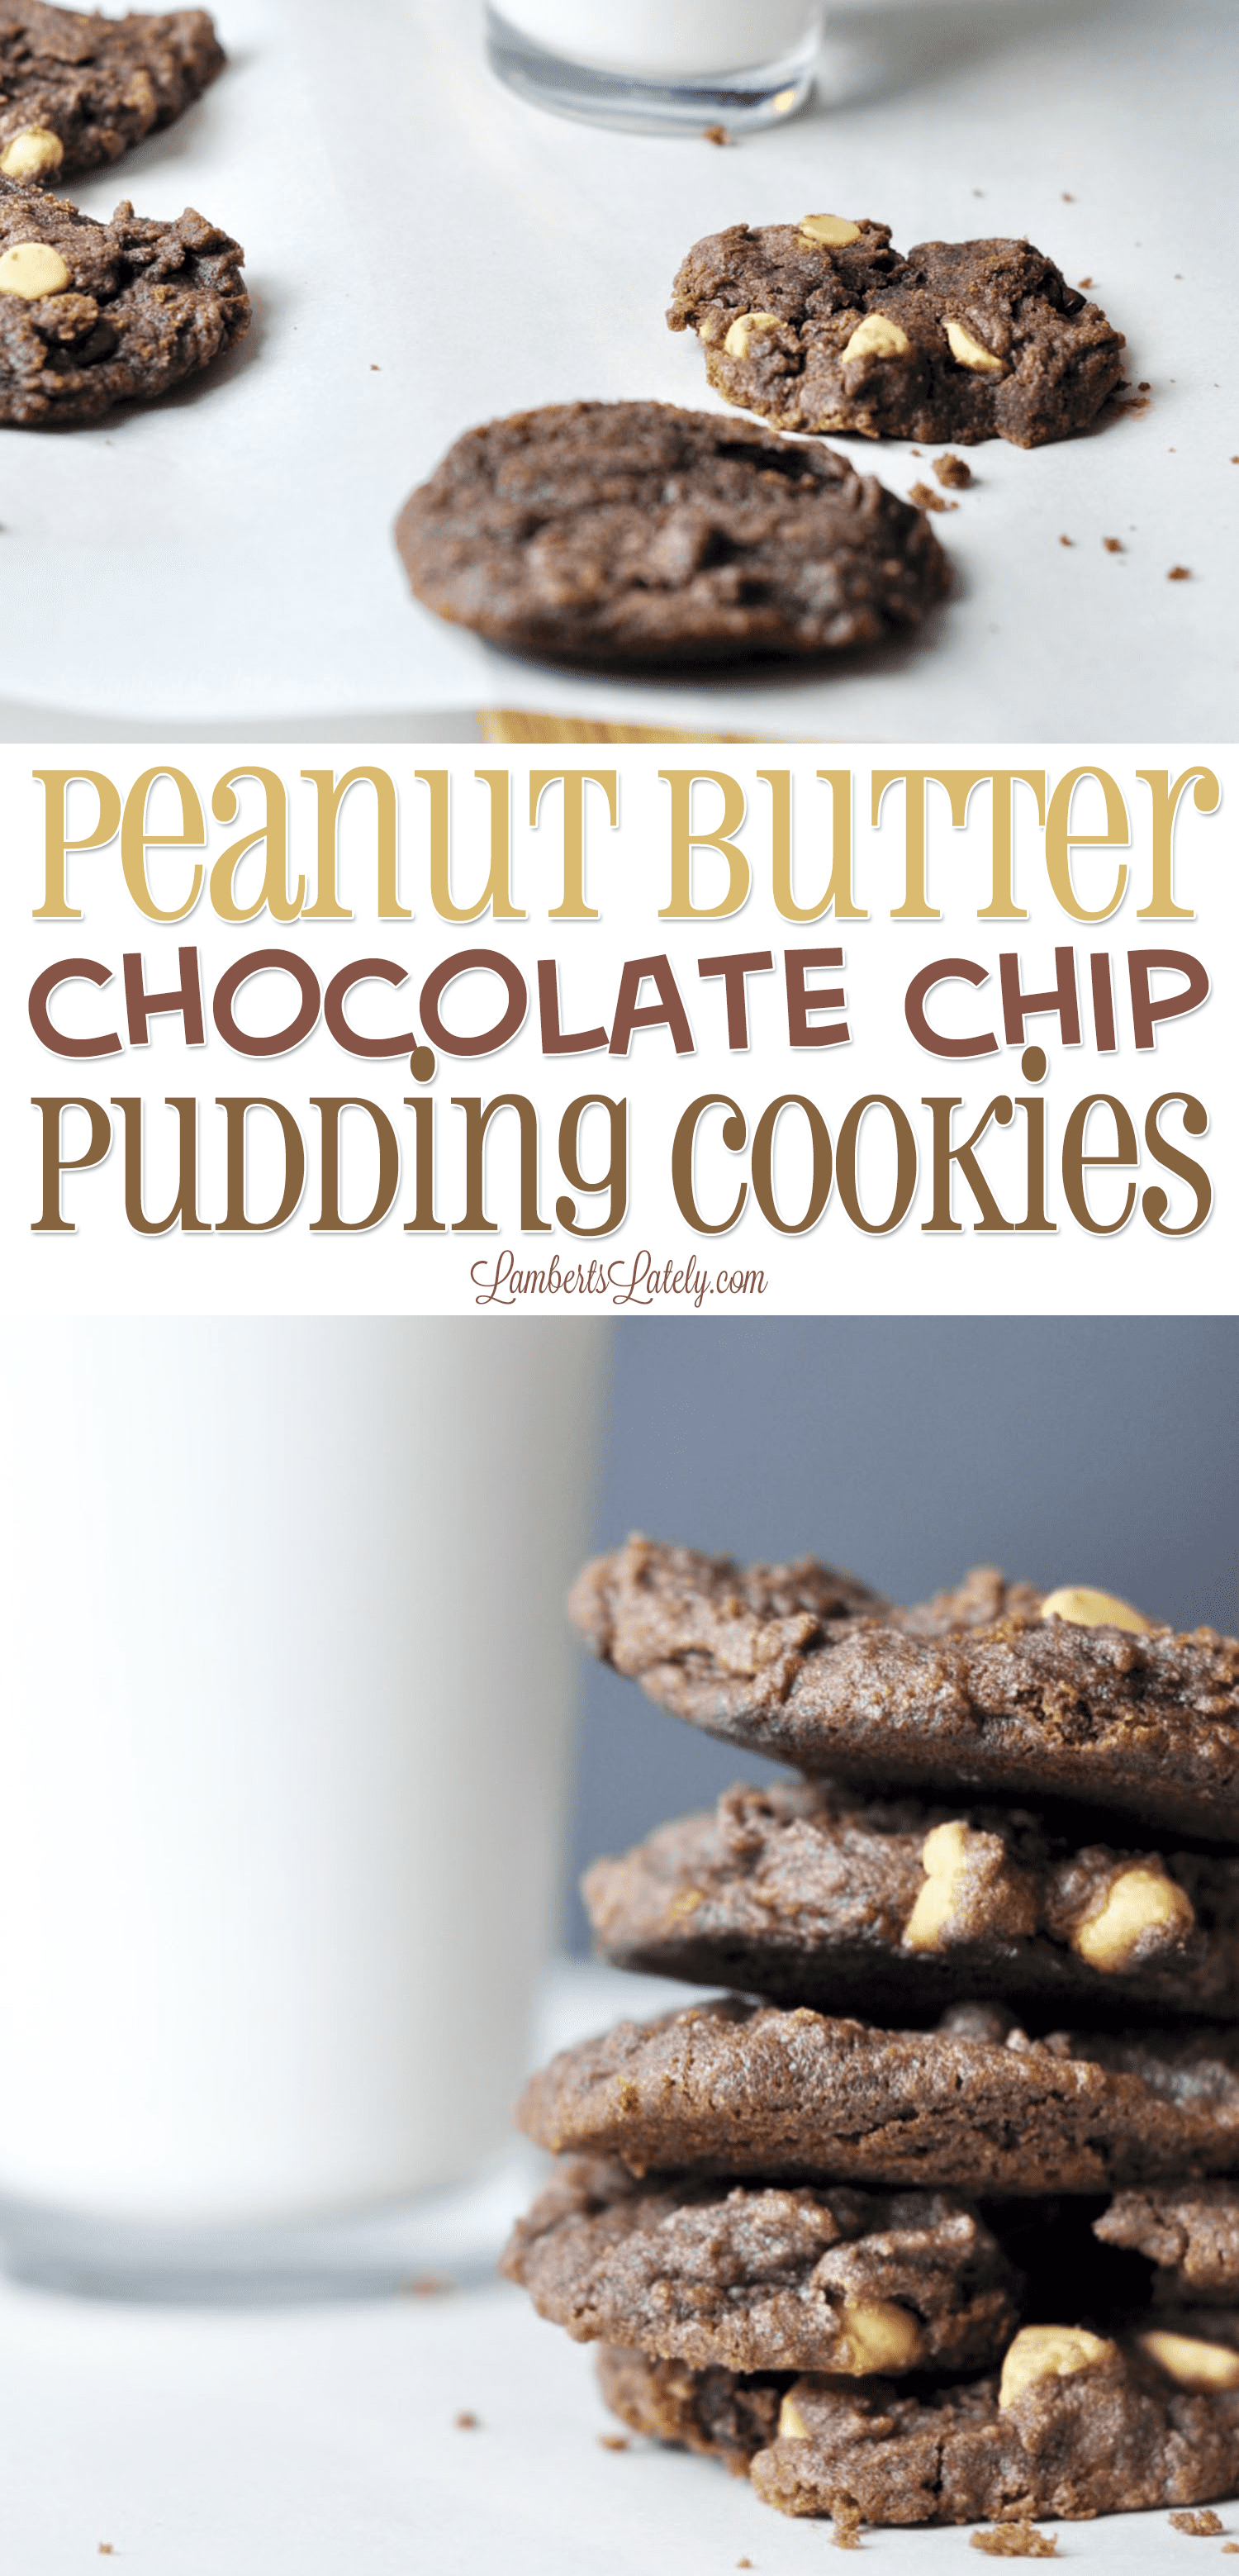 Peanut Butter Chocolate Chip Pudding Cookies are so fun to make with kids - this is an easy Christmas treat that uses instant pudding to make the chewiest, softest cookies ever!